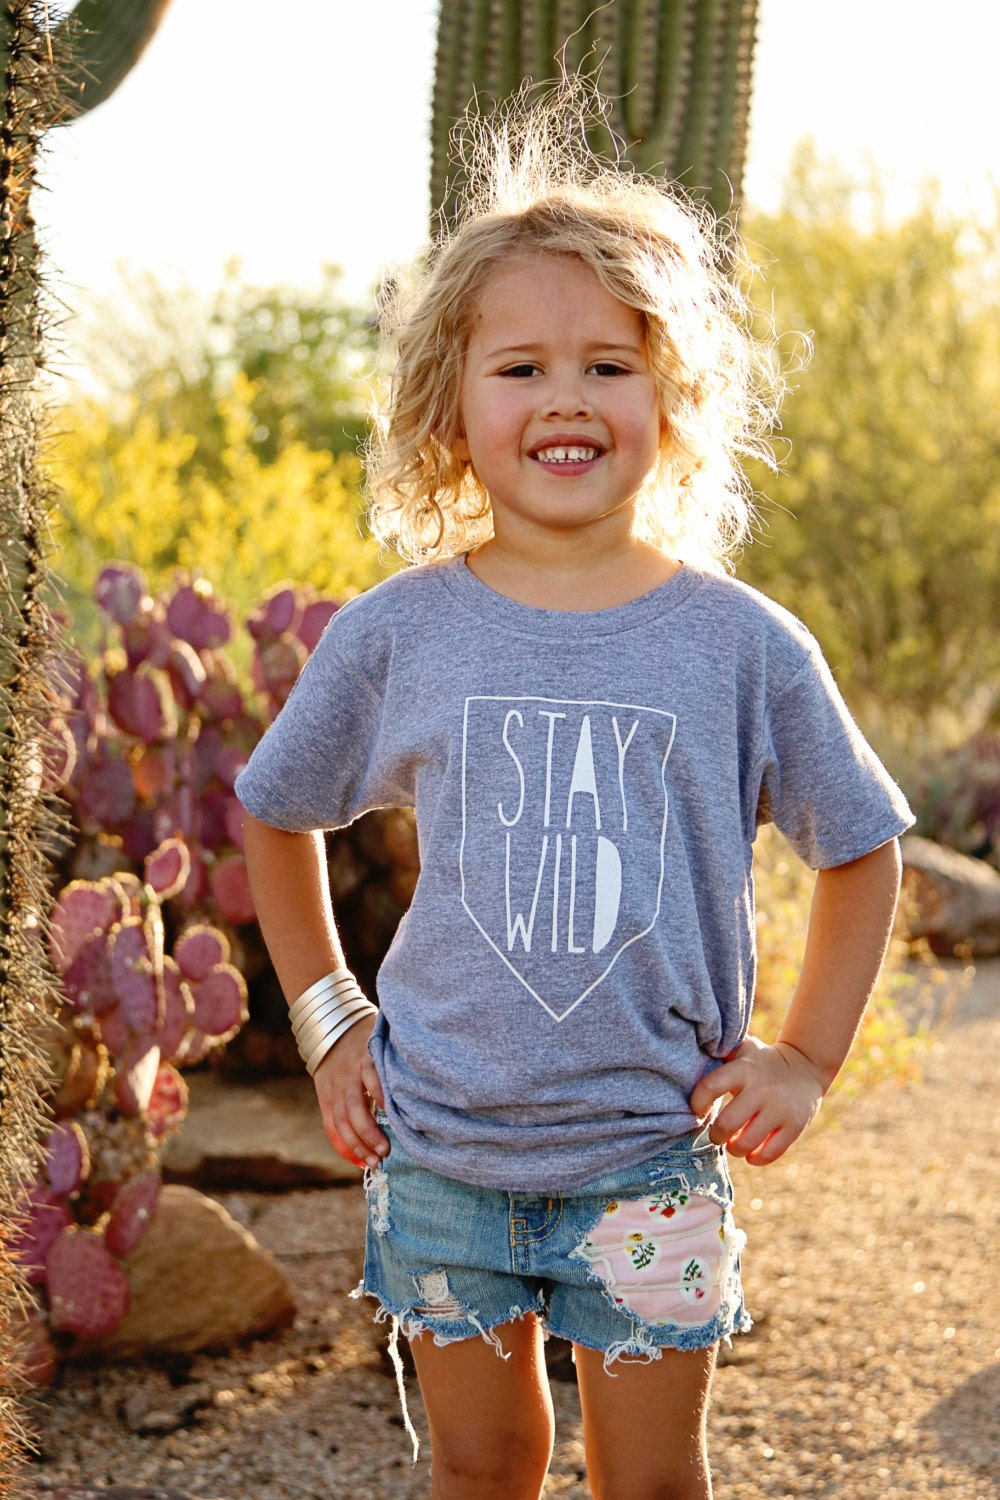 stay wild tee toddler tshirt trendy kids clothes hipster